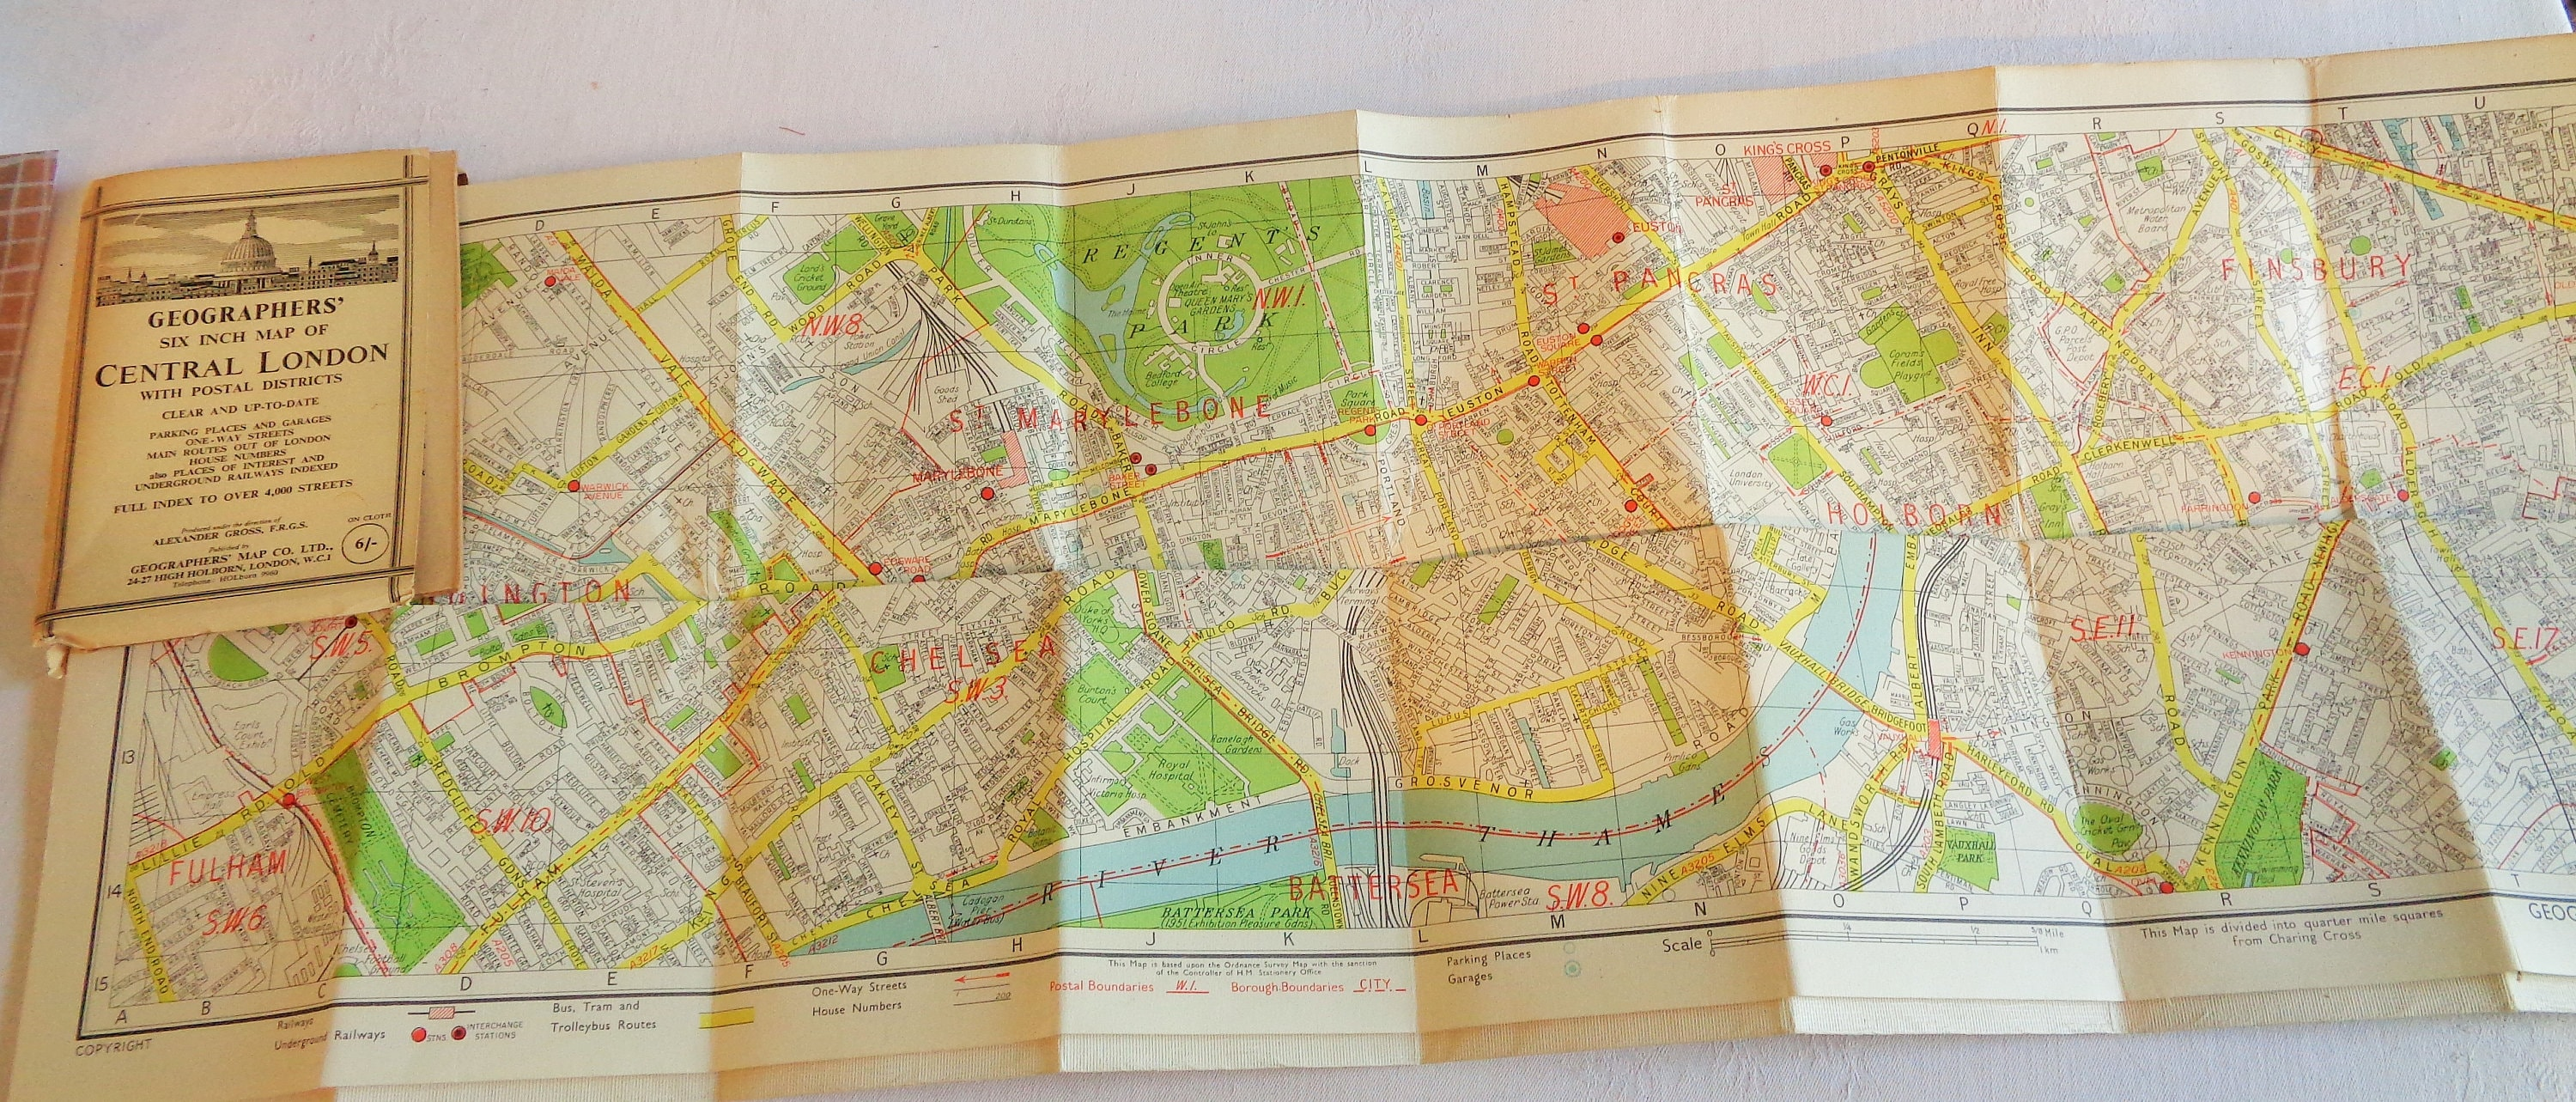 Central London Districts Map.Map Of Central London Circa 1940s 1950s Geographers Six Inch